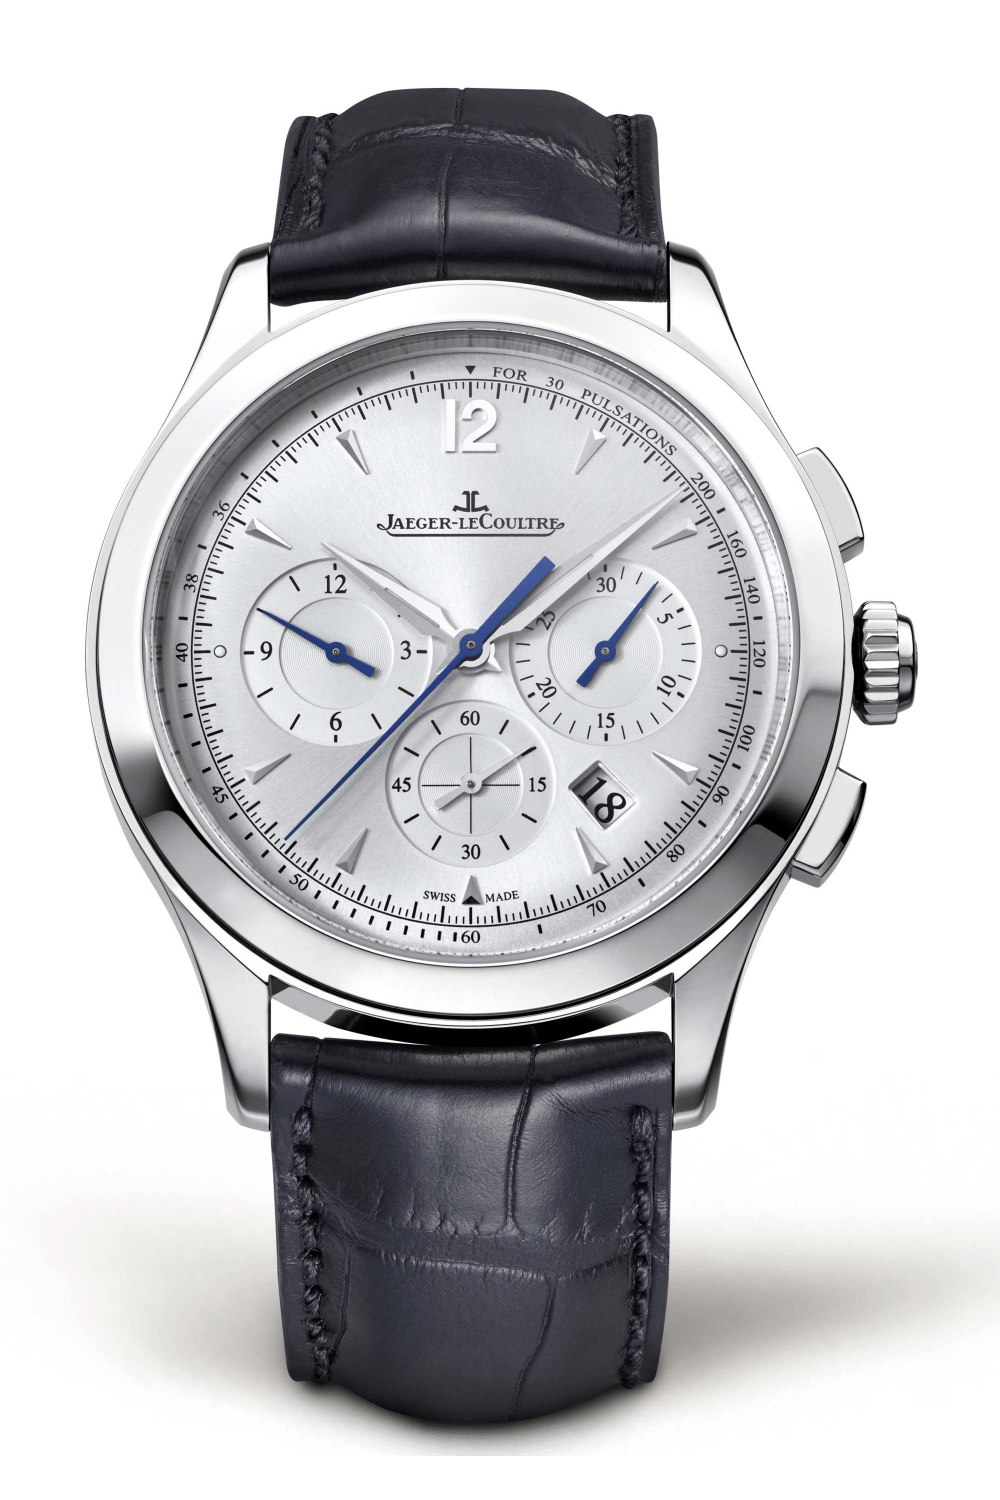 JAEGER-LeCOULTRE Master Chronograph 1538420